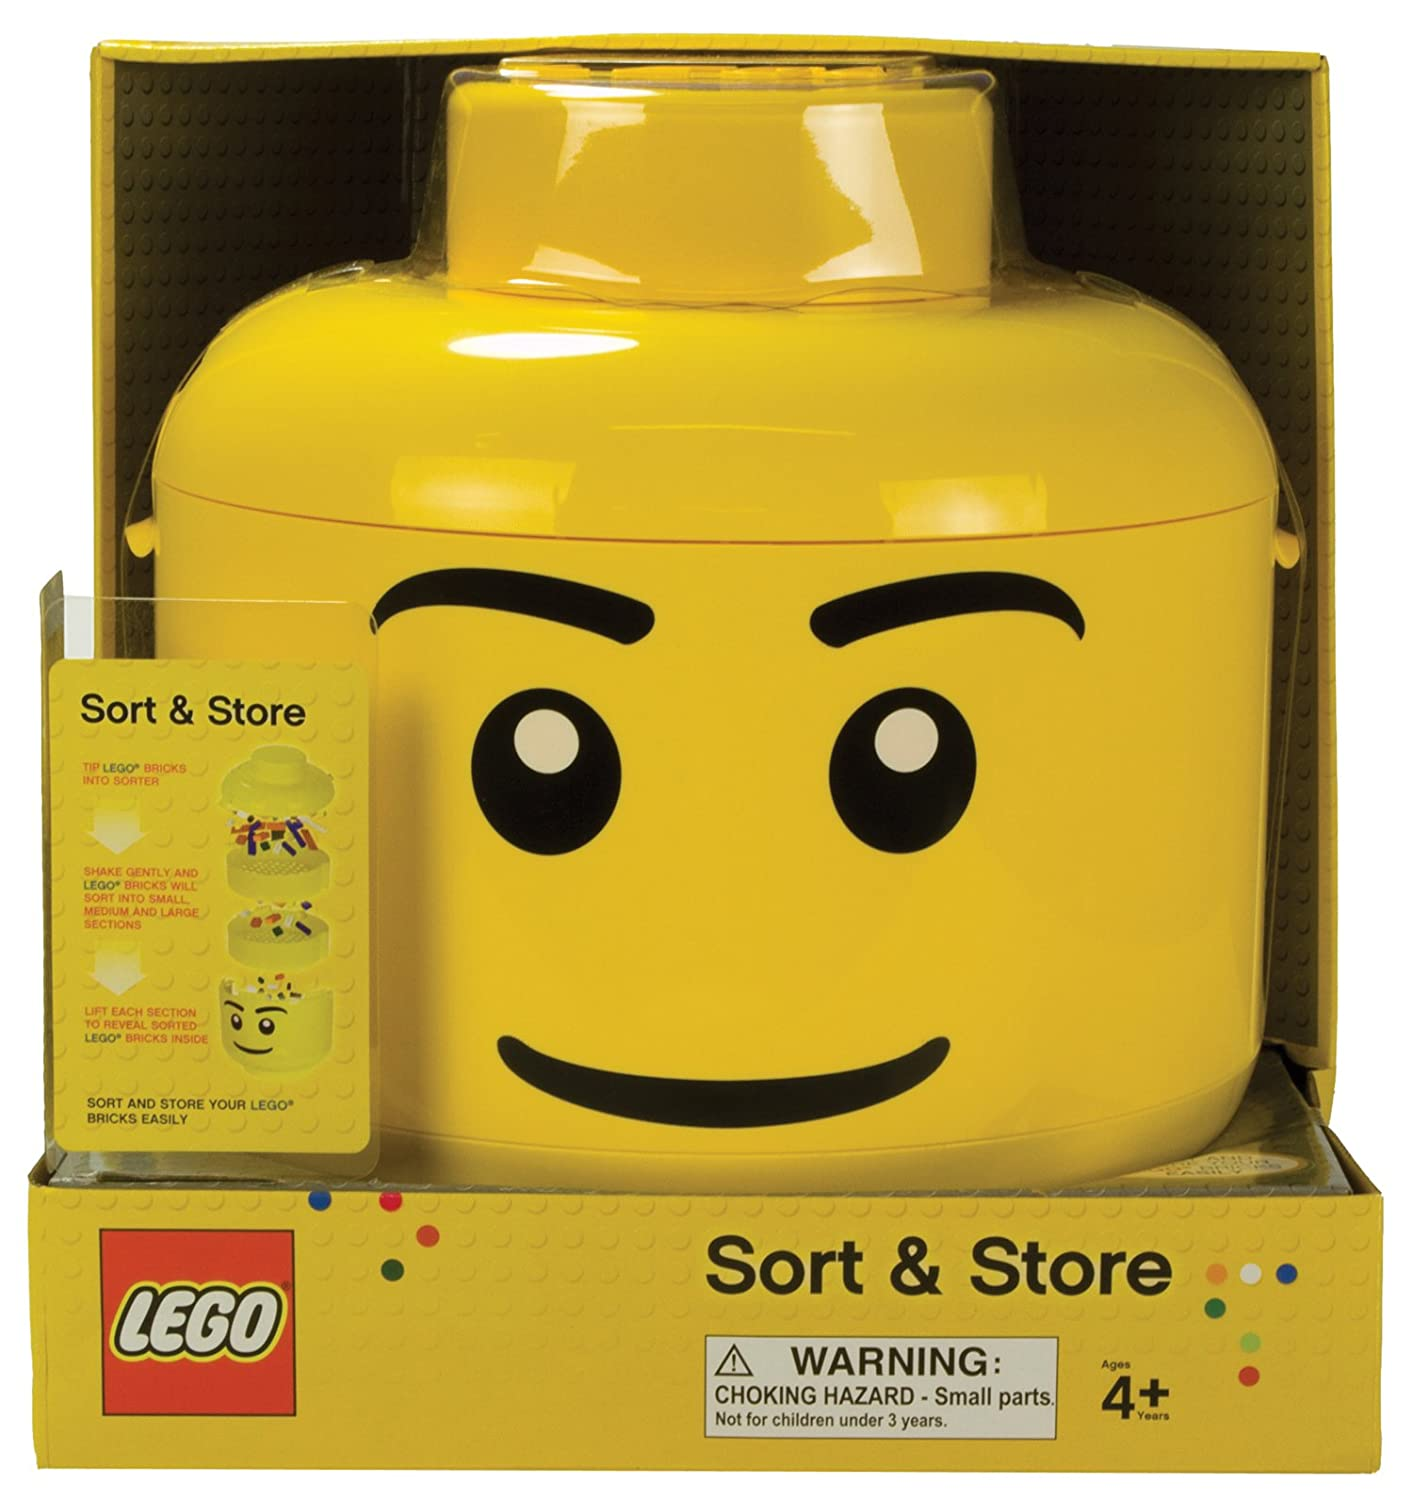 Amazoncom Lego Sort and Store Toys Games